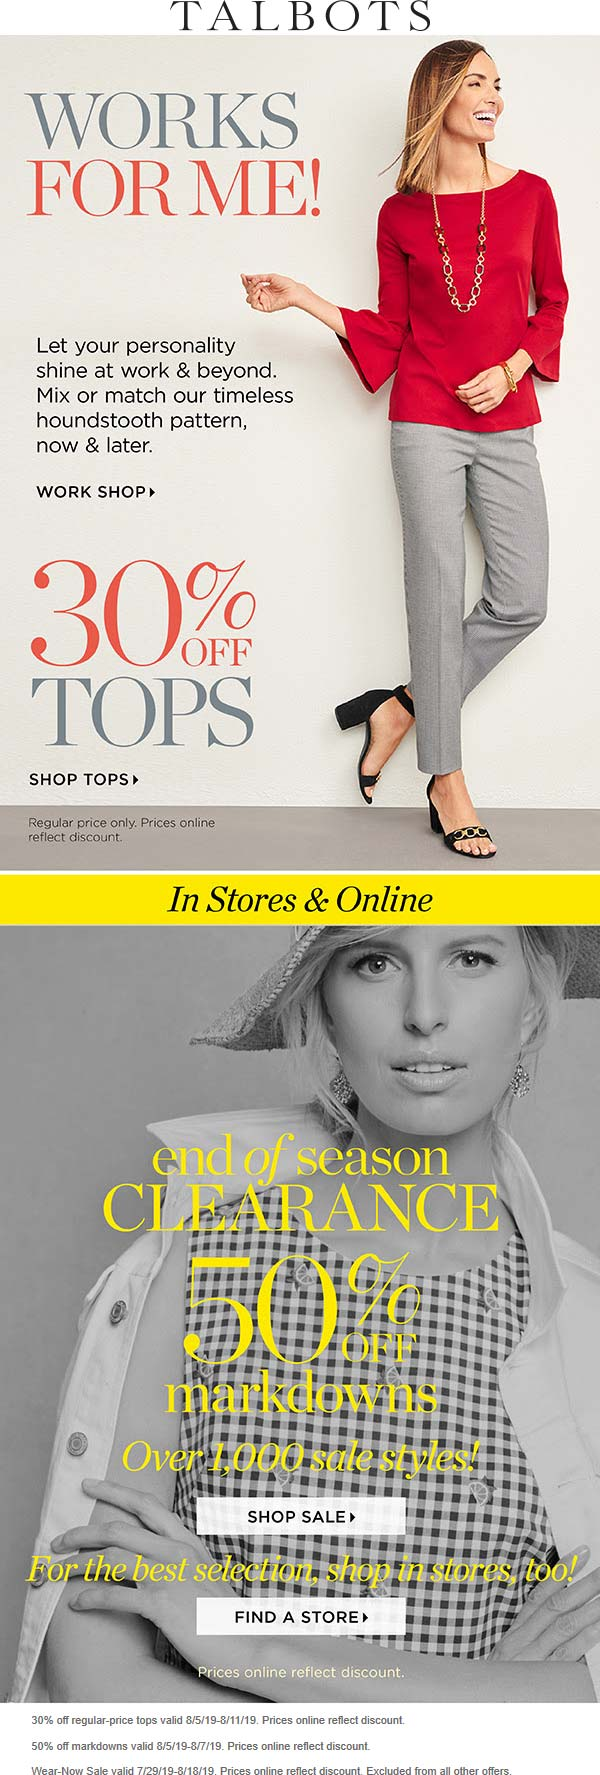 Talbots Coupon January 2020 30% off tops & 50% off sale items at Talbots, ditto online